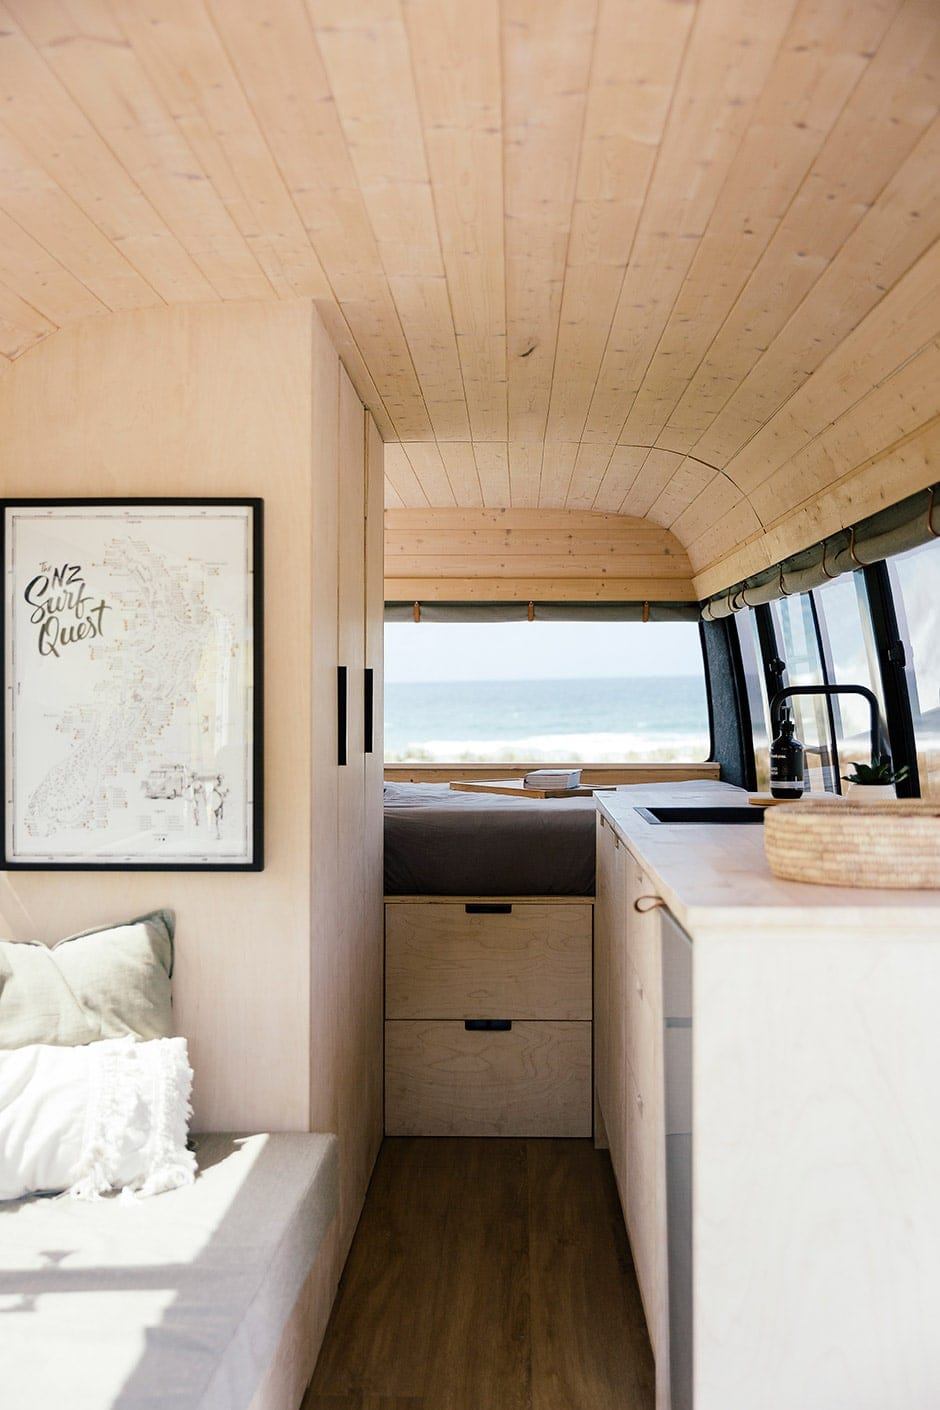 A Scandi-style surf van with a plan